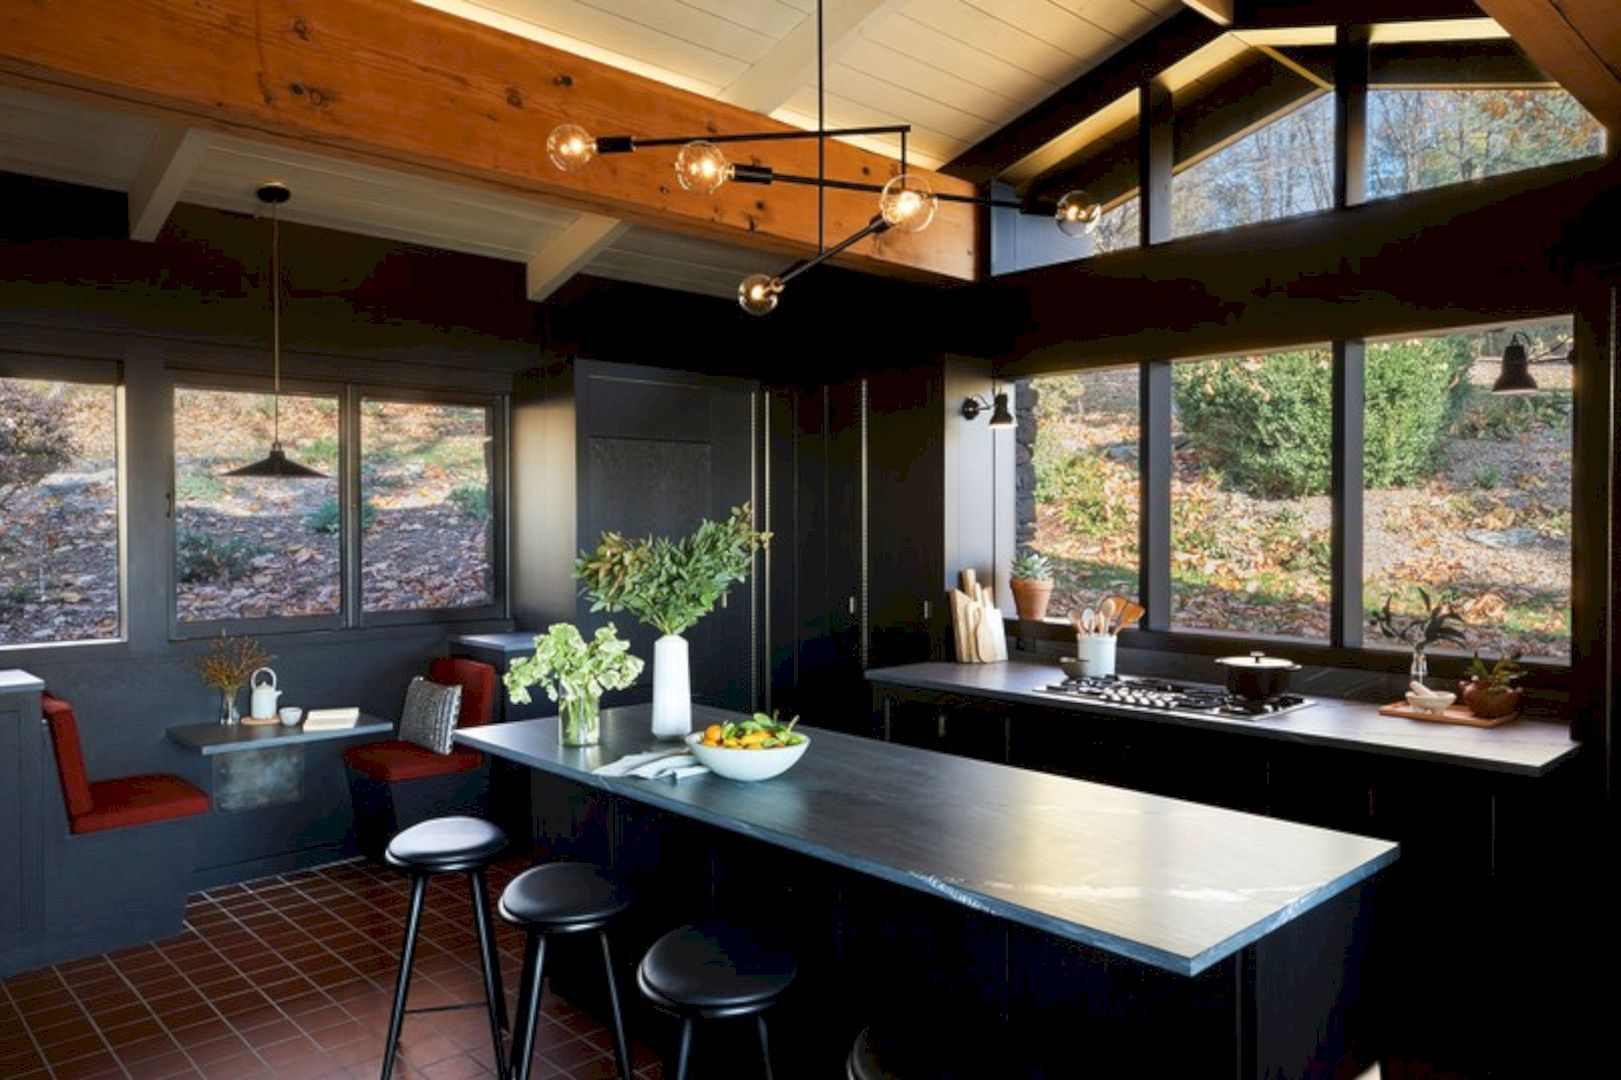 Hudson Valley: Before and After Mid-Century Home   Mid century ... on coastal home kitchens, champion home kitchens, riverview home kitchens, custom home kitchens, colonial home kitchens,